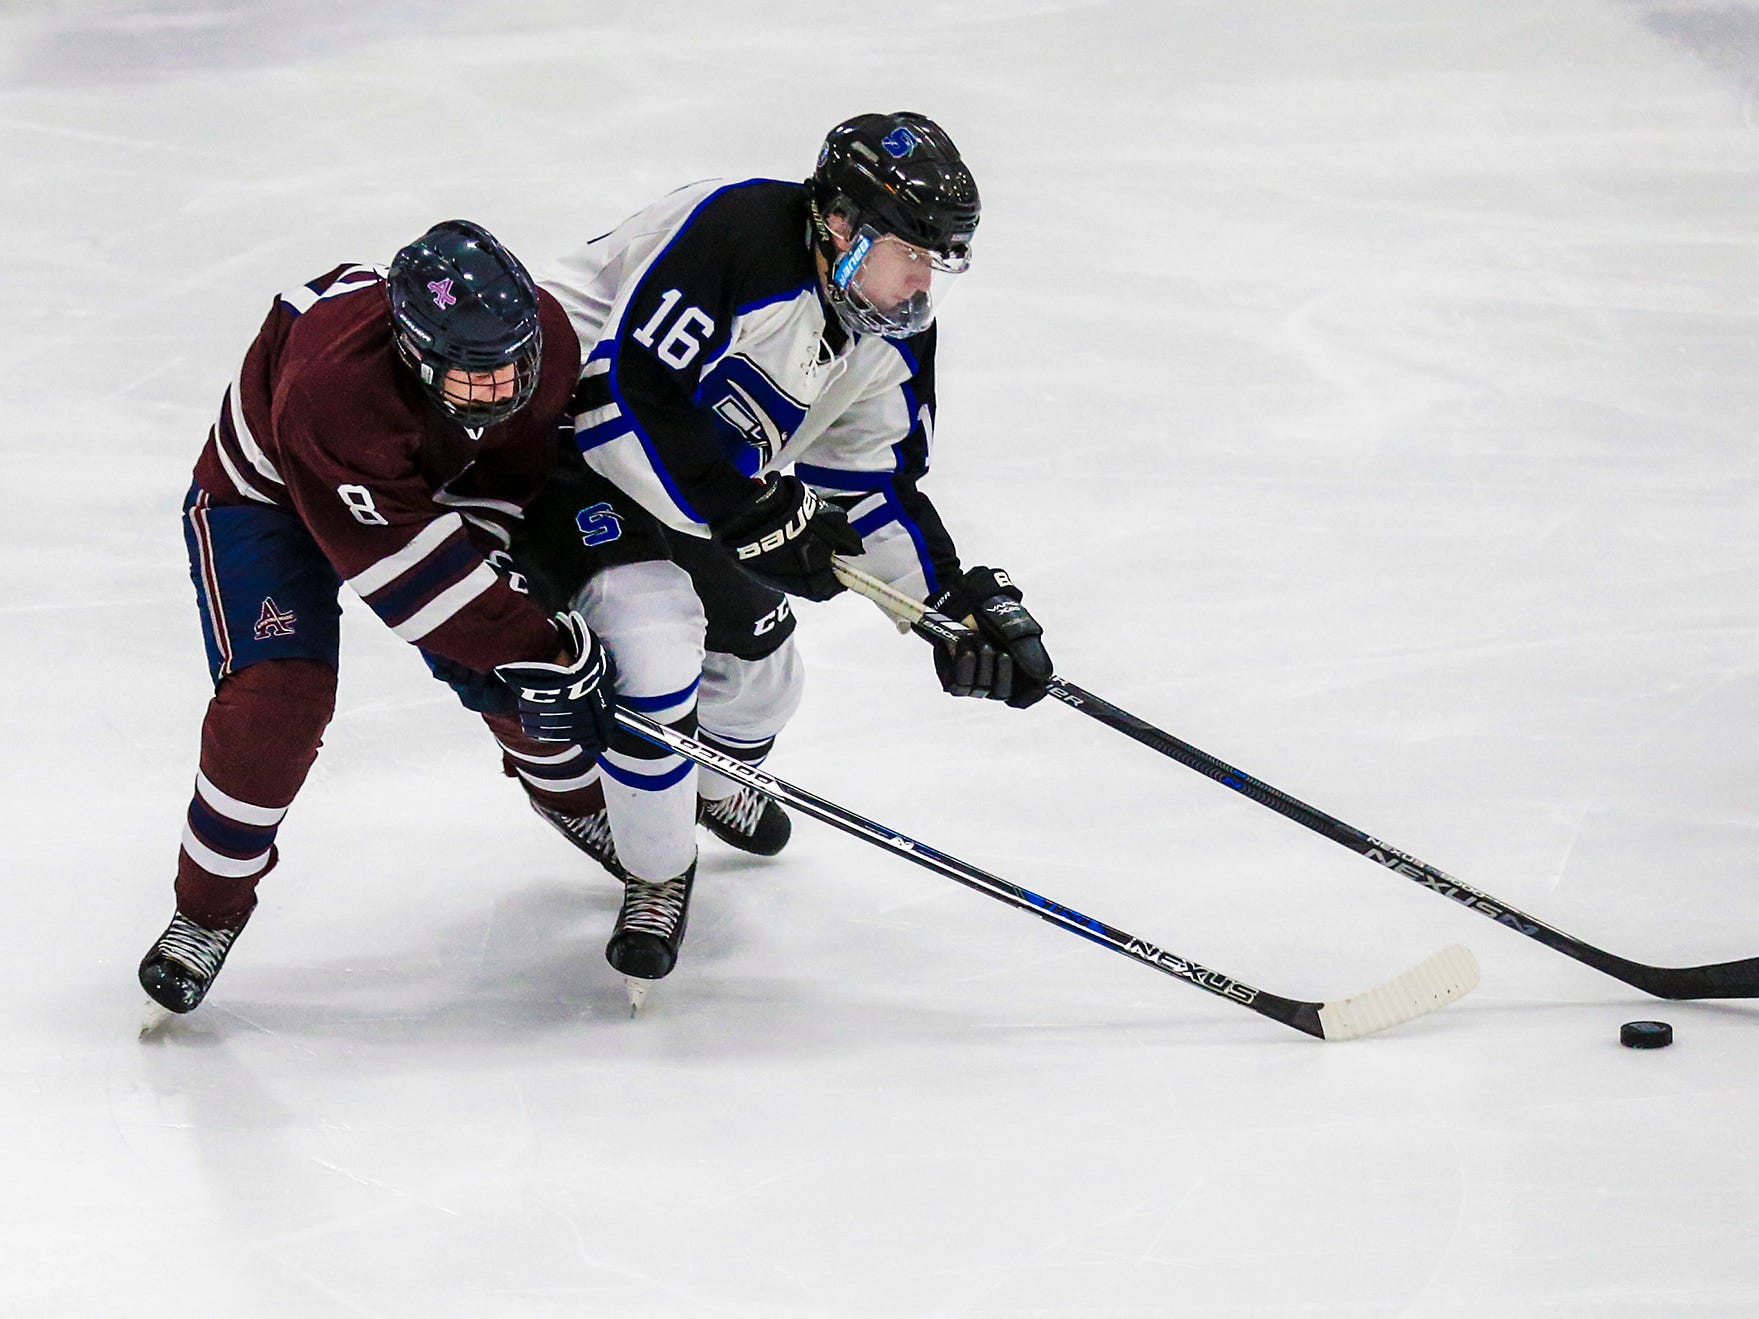 St. Mary's Springs Academy co-op hockey's Caleb Schaefer battles for the puck against Appleton United's Josh Christofferson during their game Thursday, November 29, 2018 played in Fond du Lac. Springs won the game 8-1. Doug Raflik/USA TODAY NETWORK-Wisconsin